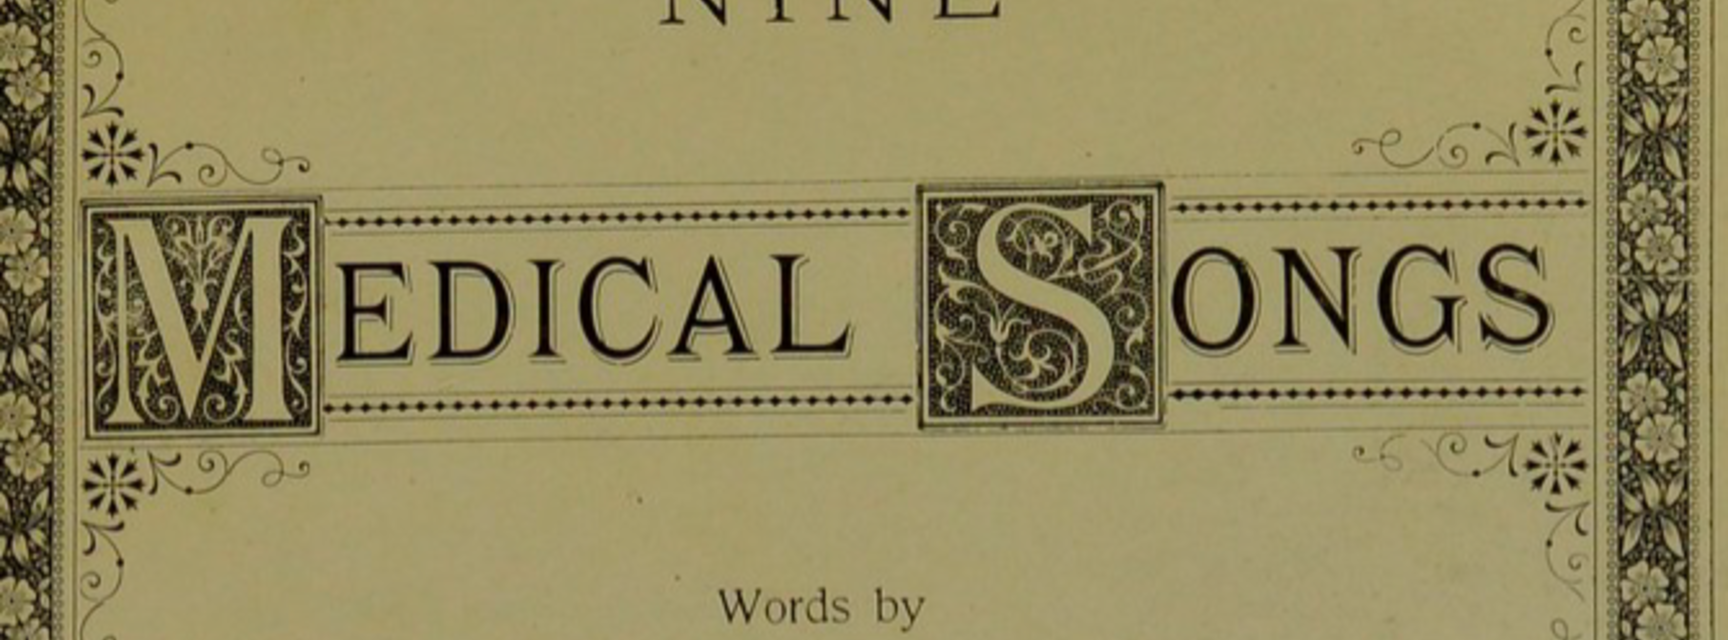 nine medical songs title page